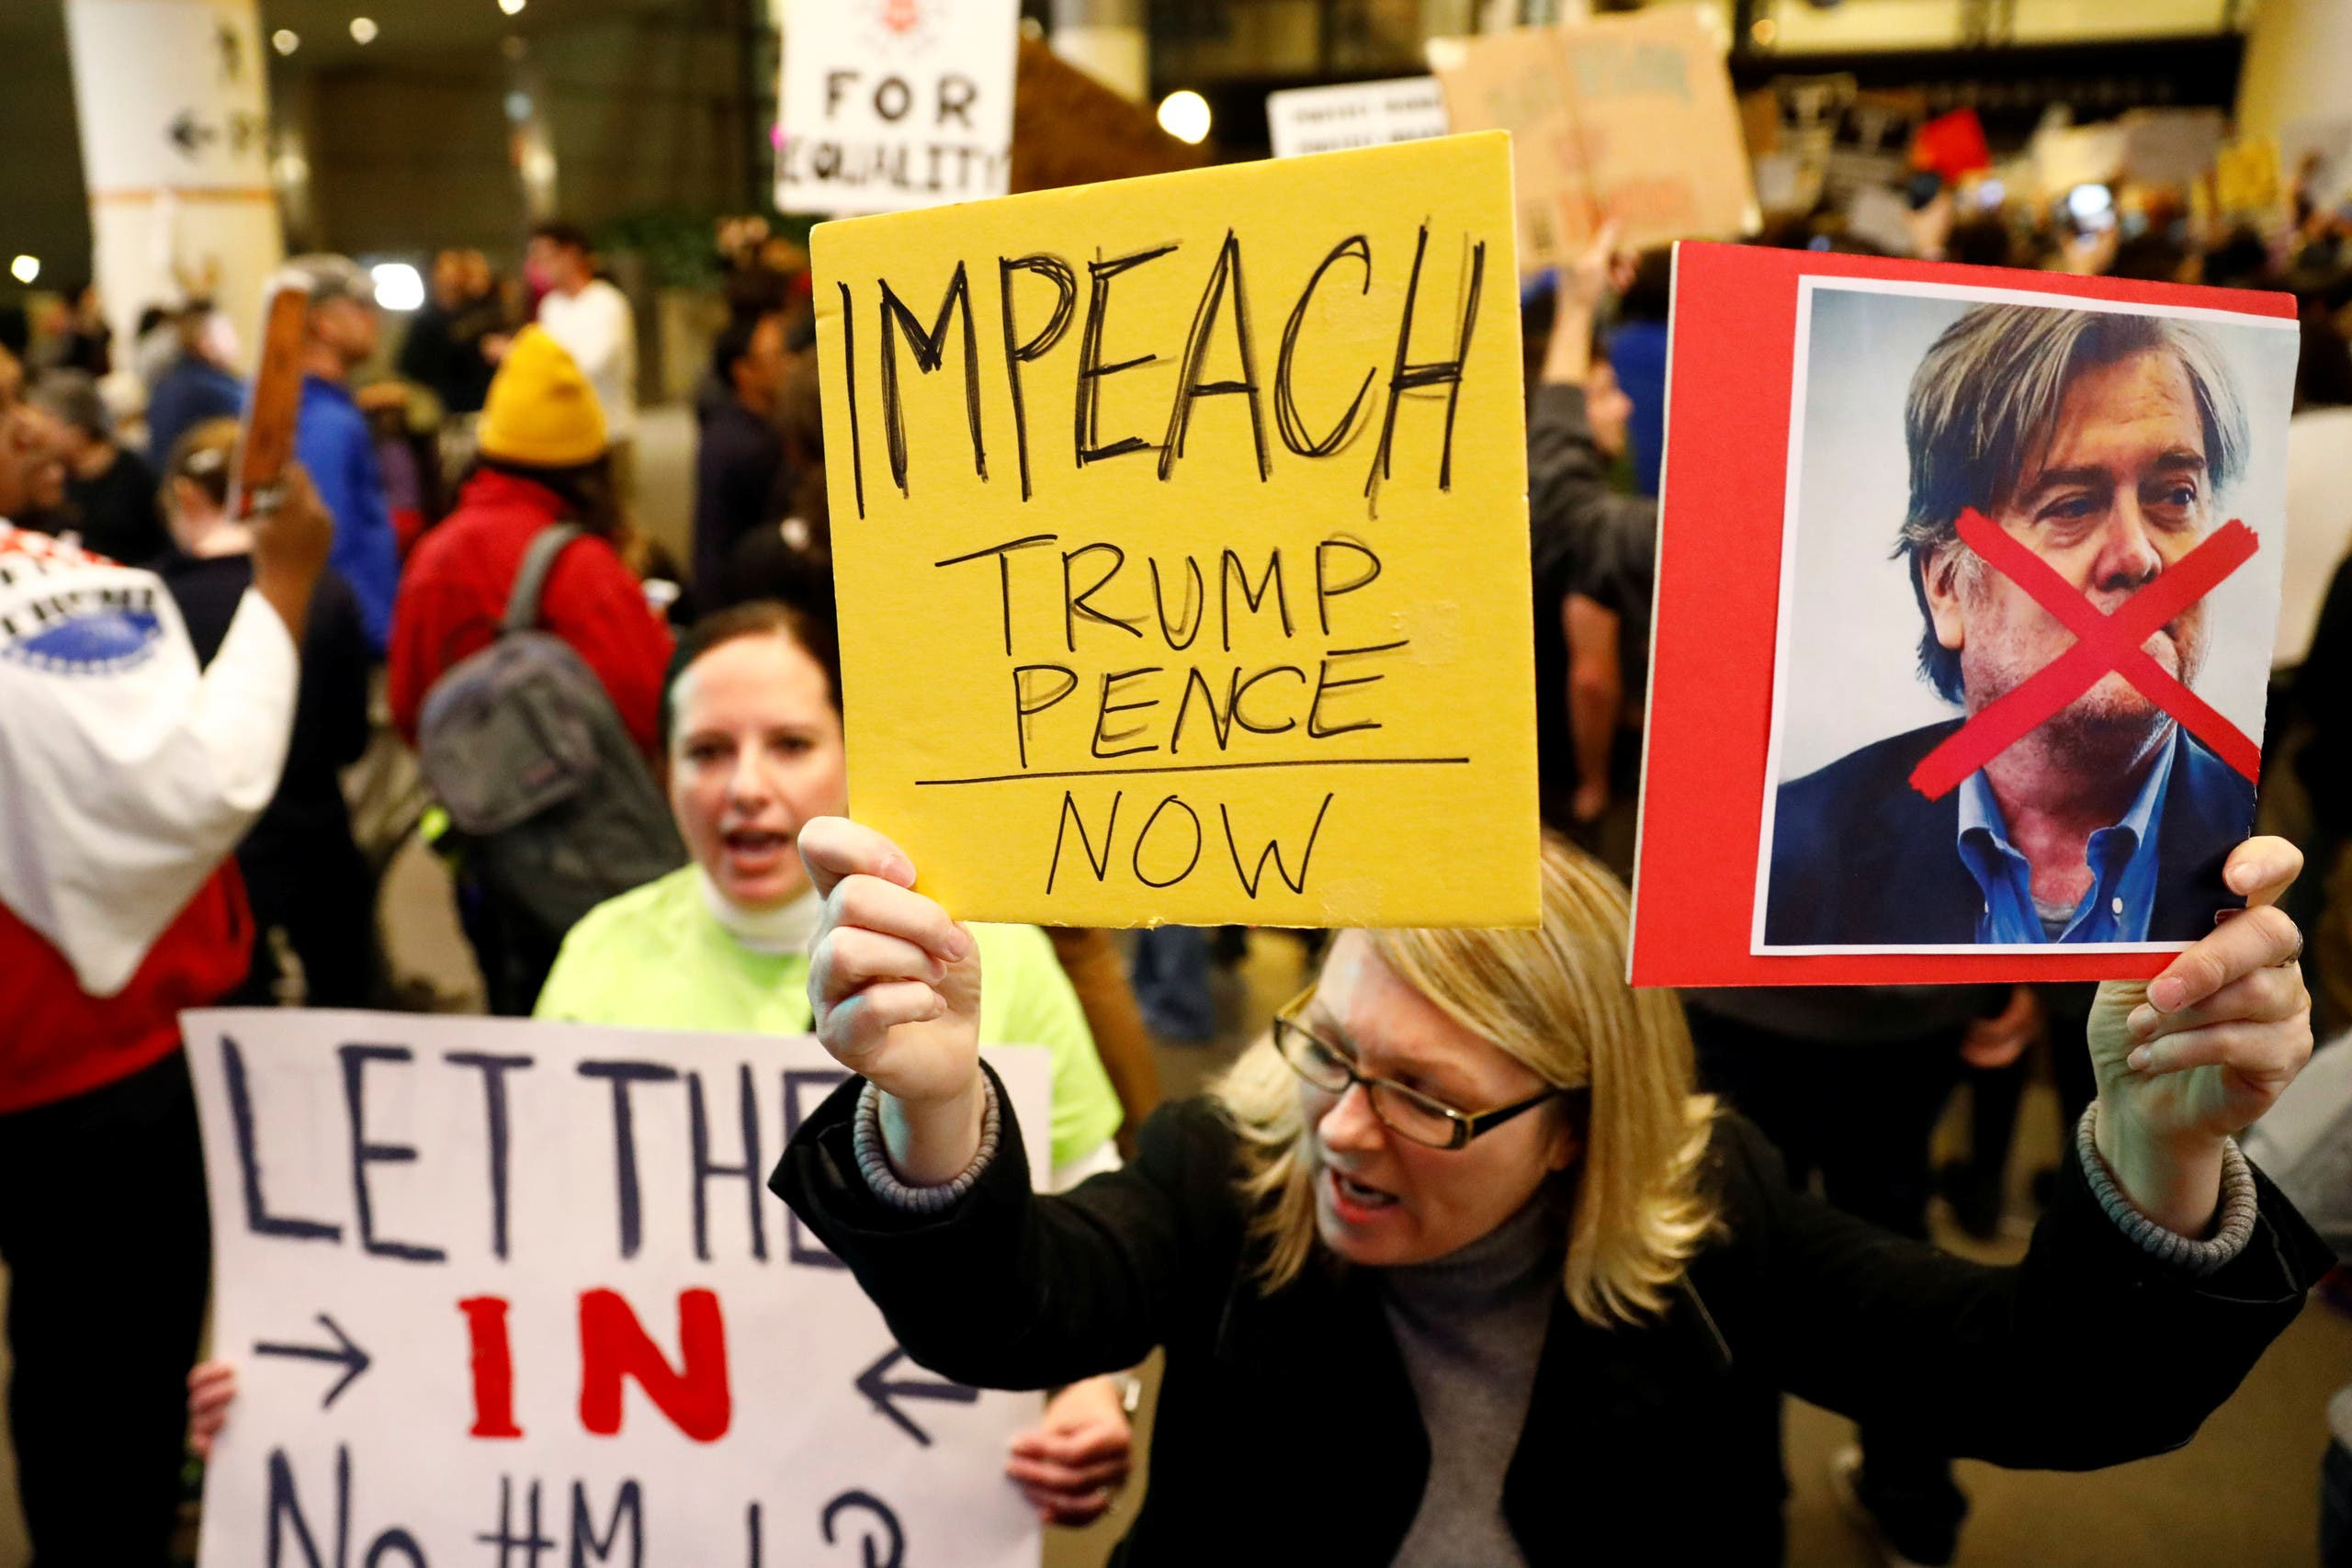 A woman holds signs against Steve Bannon and encouraging the impeachment of Trump and Pence during a protest of Donald Trump's travel ban from Muslim majority countries at the International terminal at Los Angeles International Airport (LAX) in Los Angeles, California, U.S., January 28, 2017. REUTERS/Patrick T. Fallon